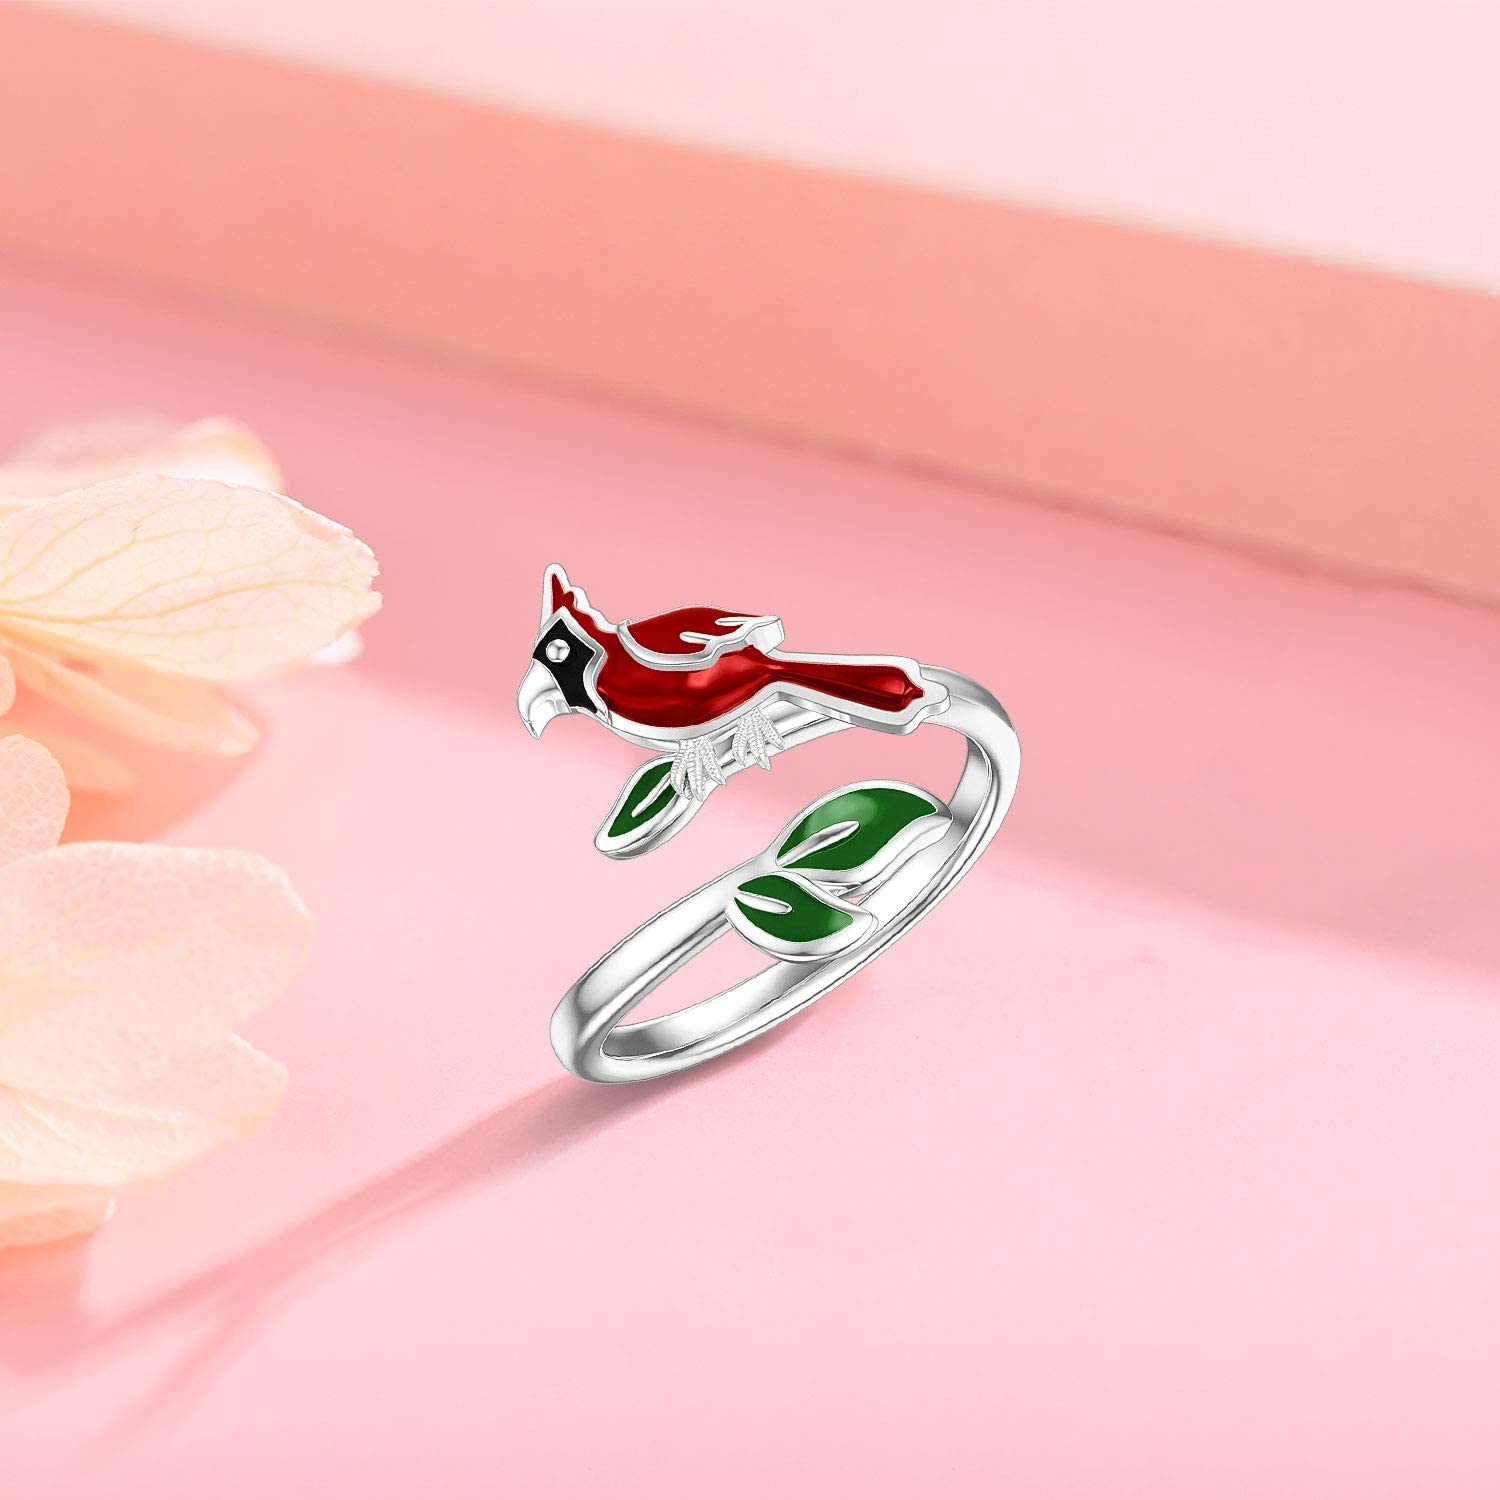 Cardinal Red Bird Open Ring 925 Sterling Silver Jewelry Memorial Gifts for Women Mother